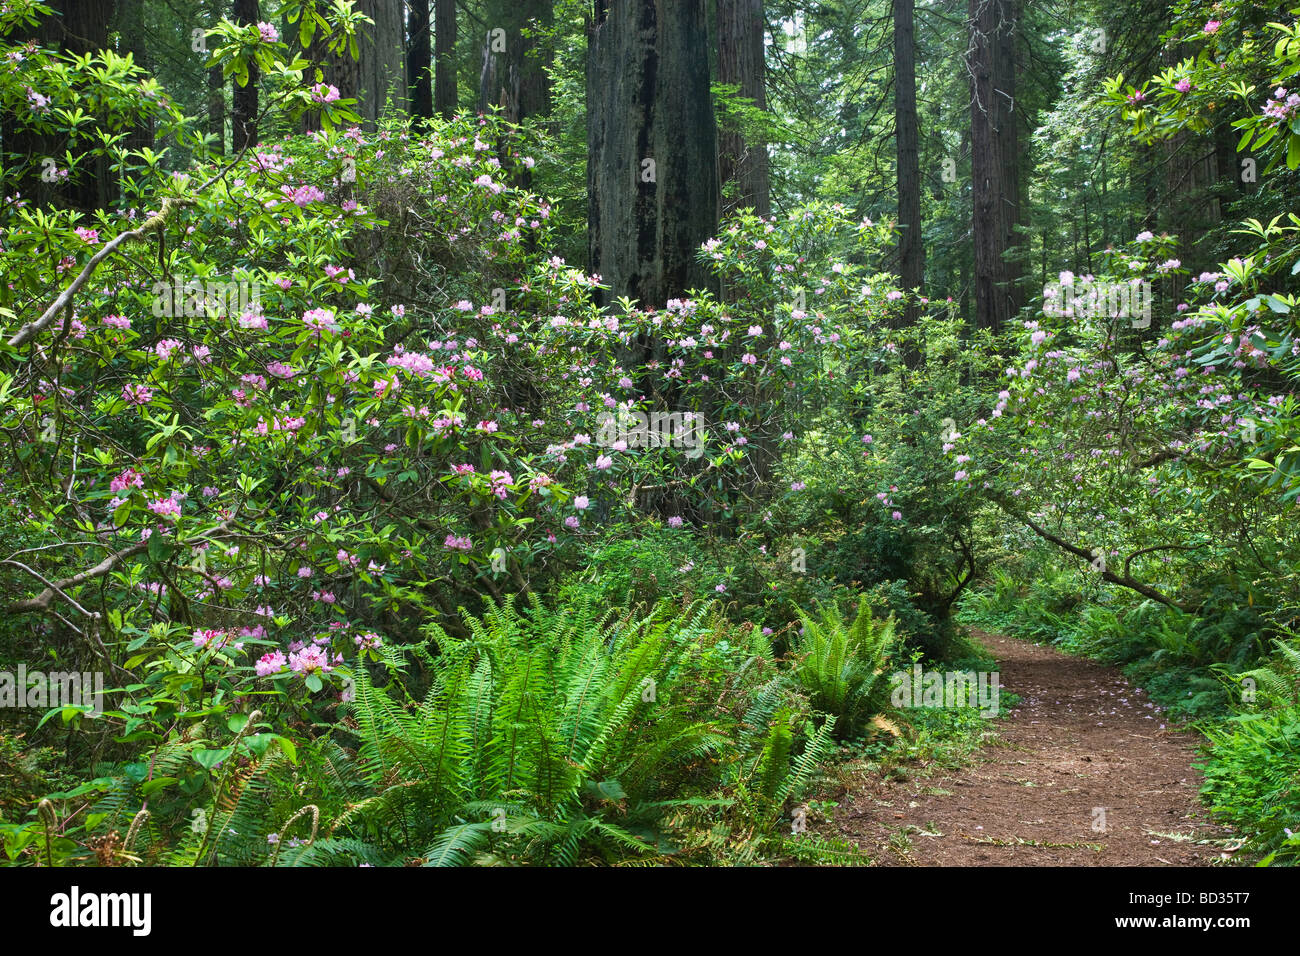 Rhododendrons flowering, Redwood Forest. - Stock Image